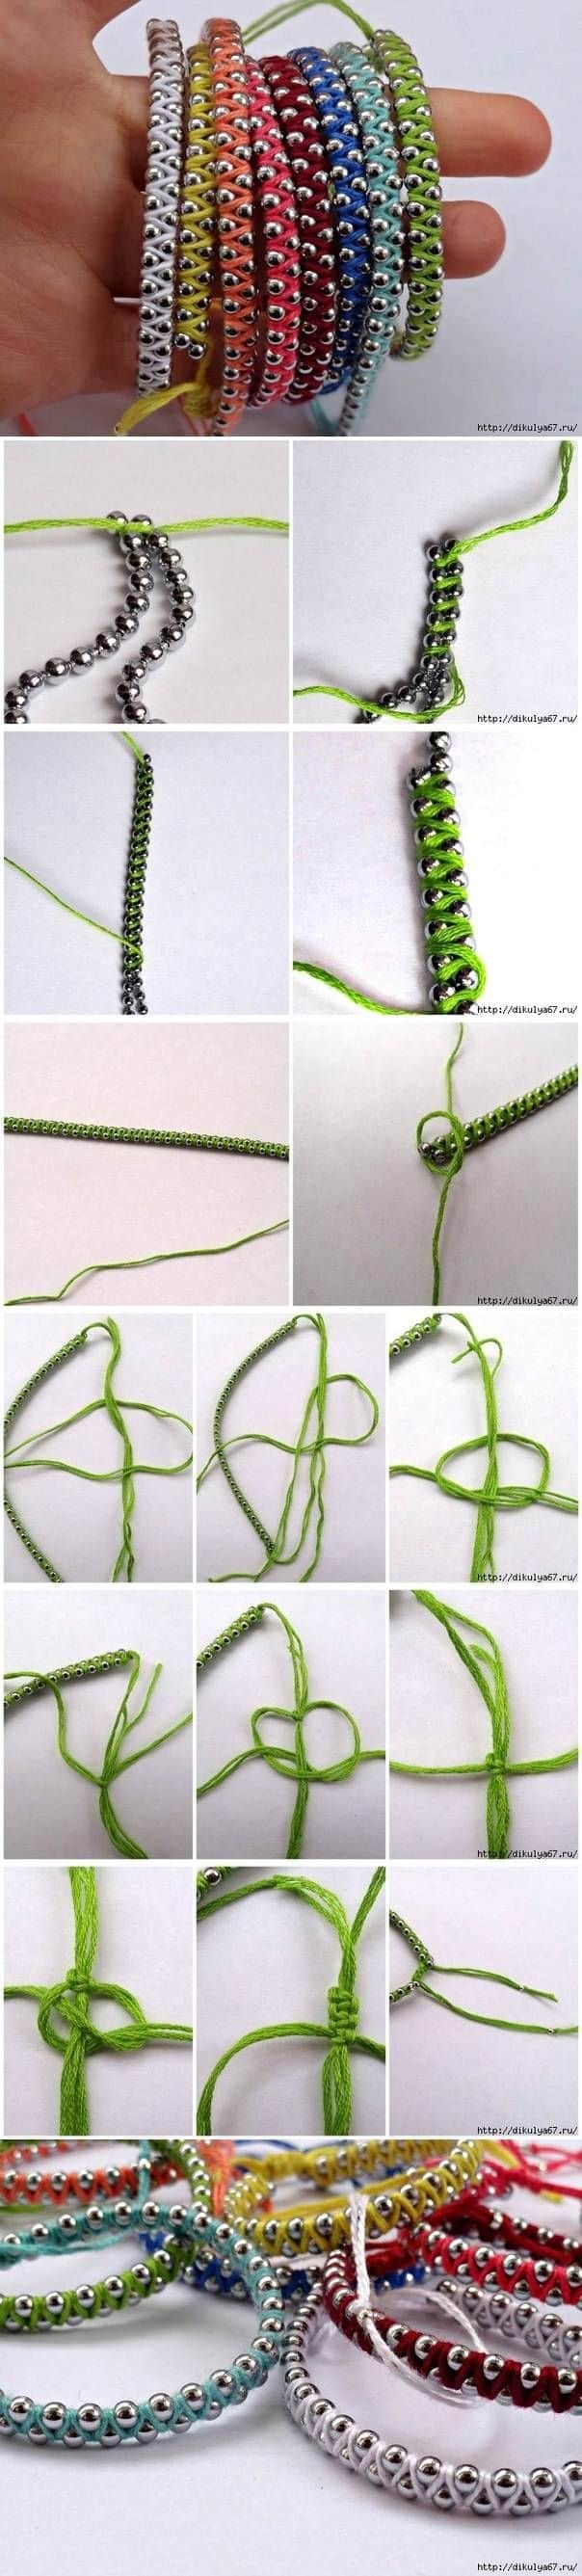 #12 MAKE AND SELL DIY MULTI-COLORED FRIENDSHIP BRACELETS